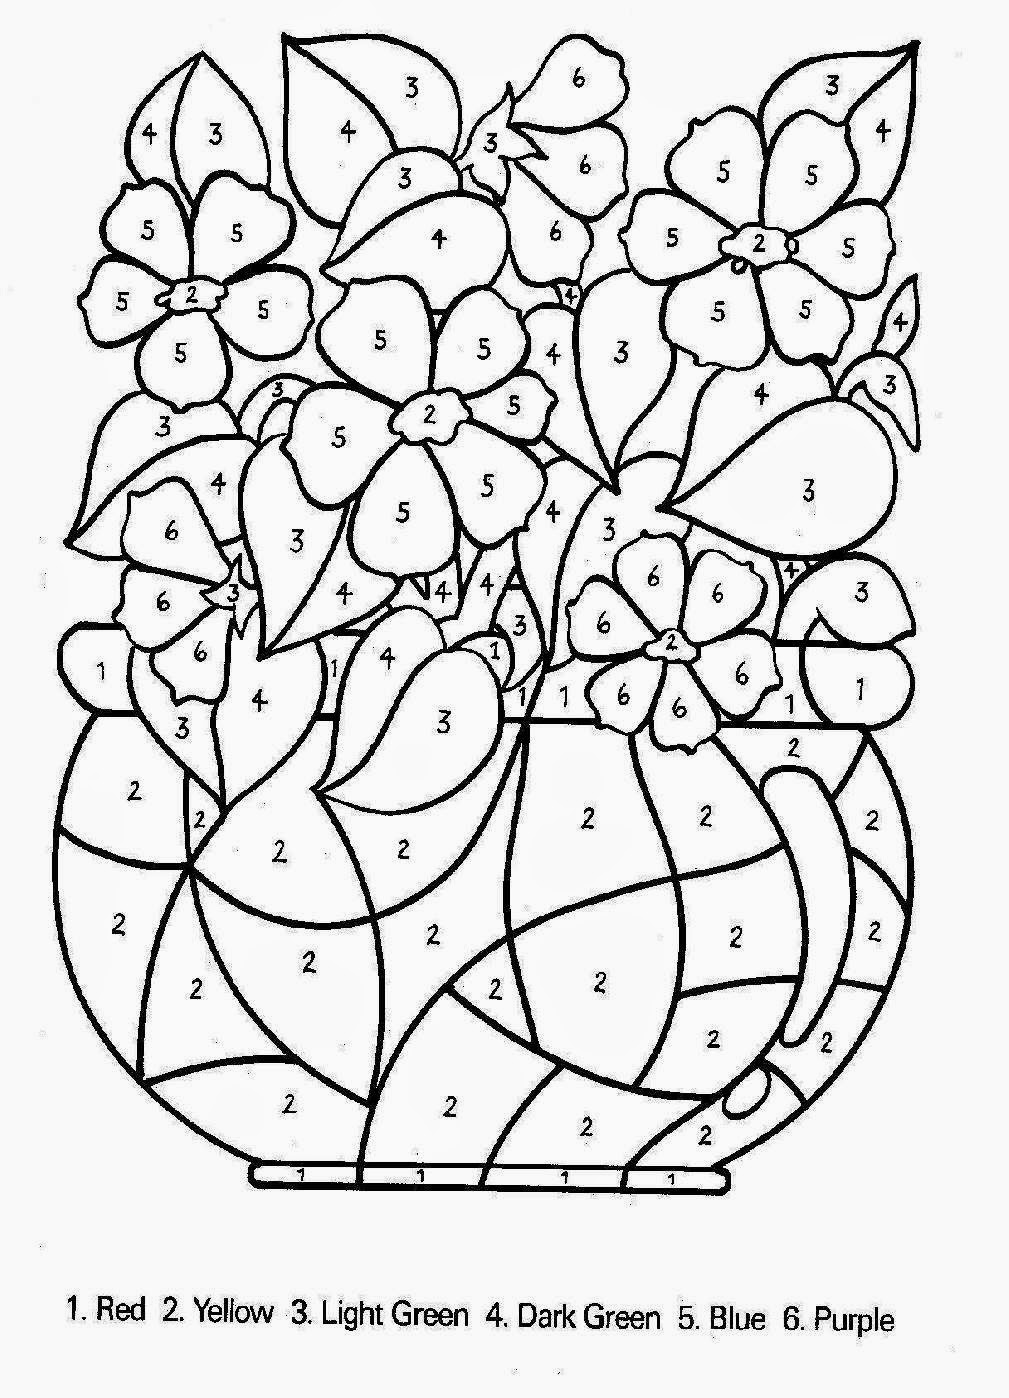 Number Coloring Sheets Free Coloring Sheet - Coloring Pages Galleries